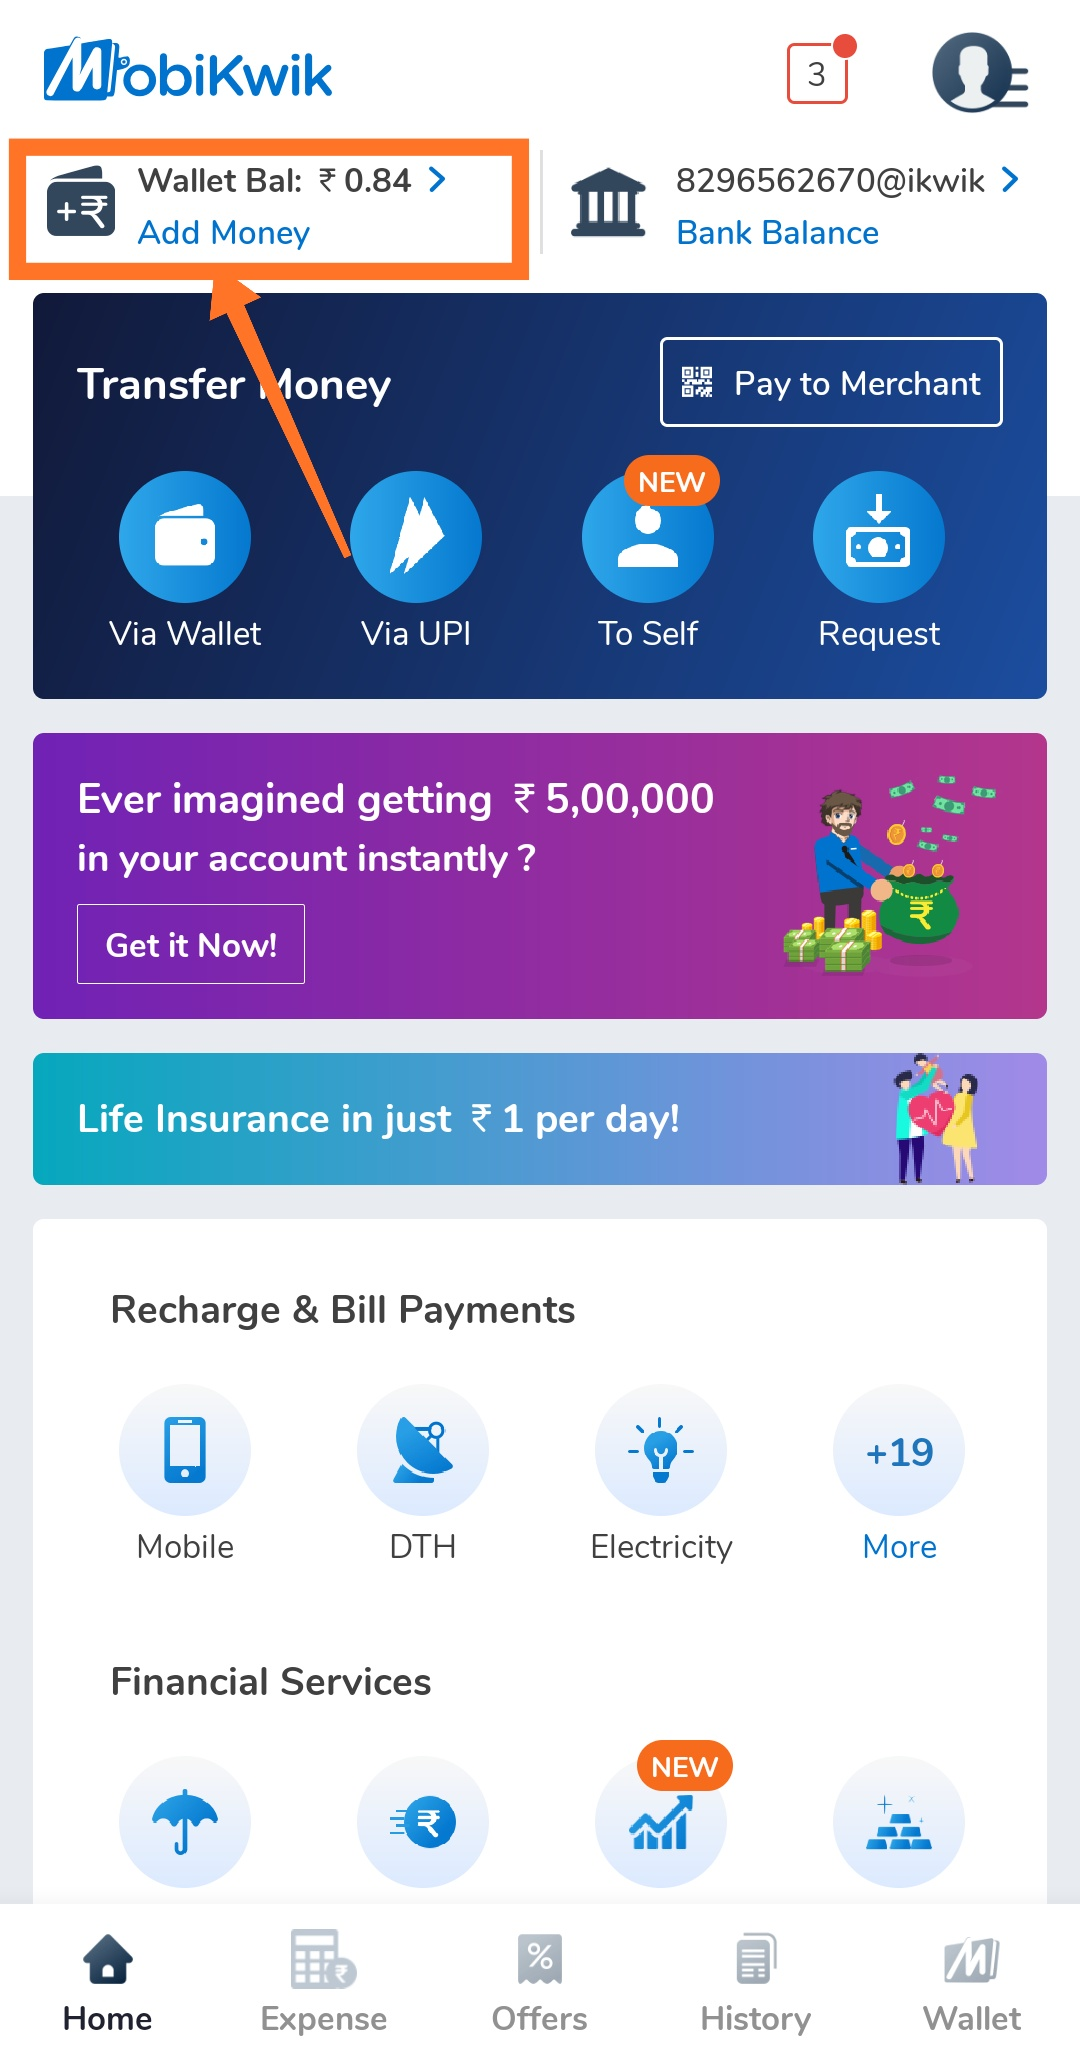 Mobikwik-Add-Money